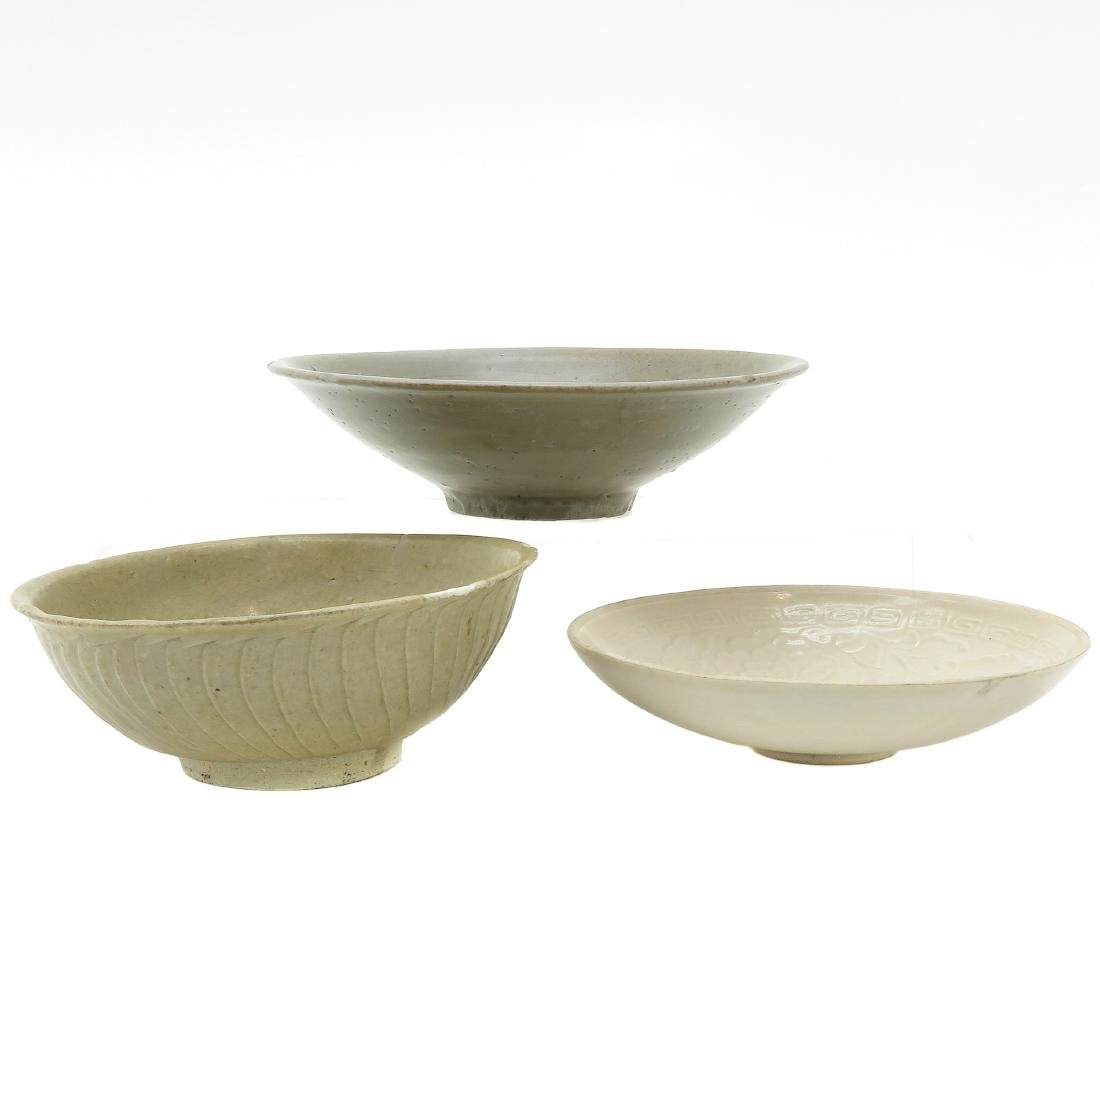 Lot of 3 Small Bowls - 3